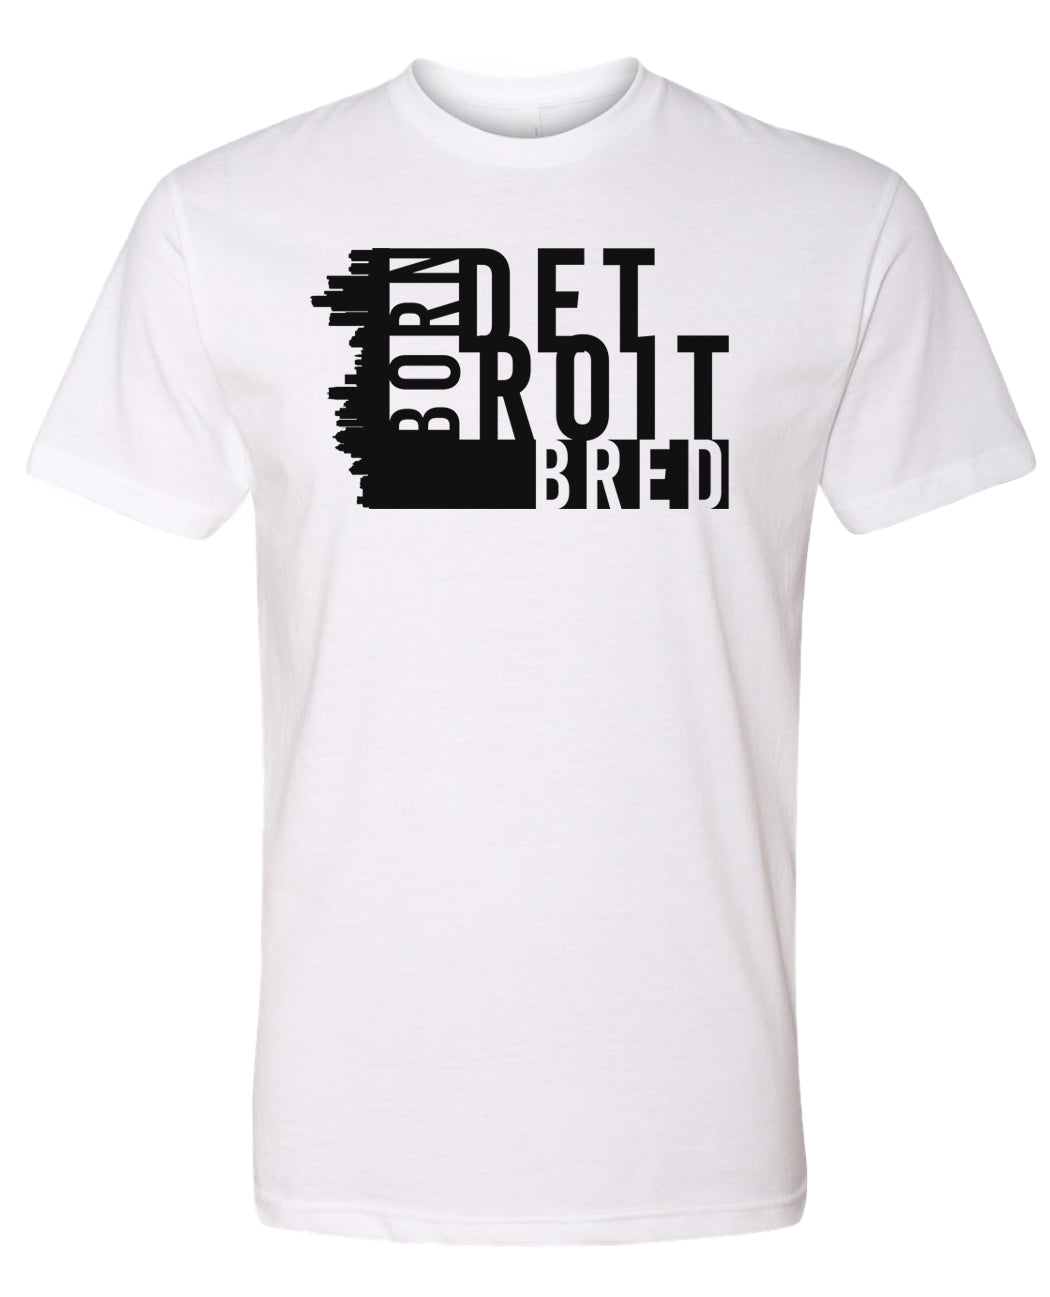 white Detroit born and bred t-shirt